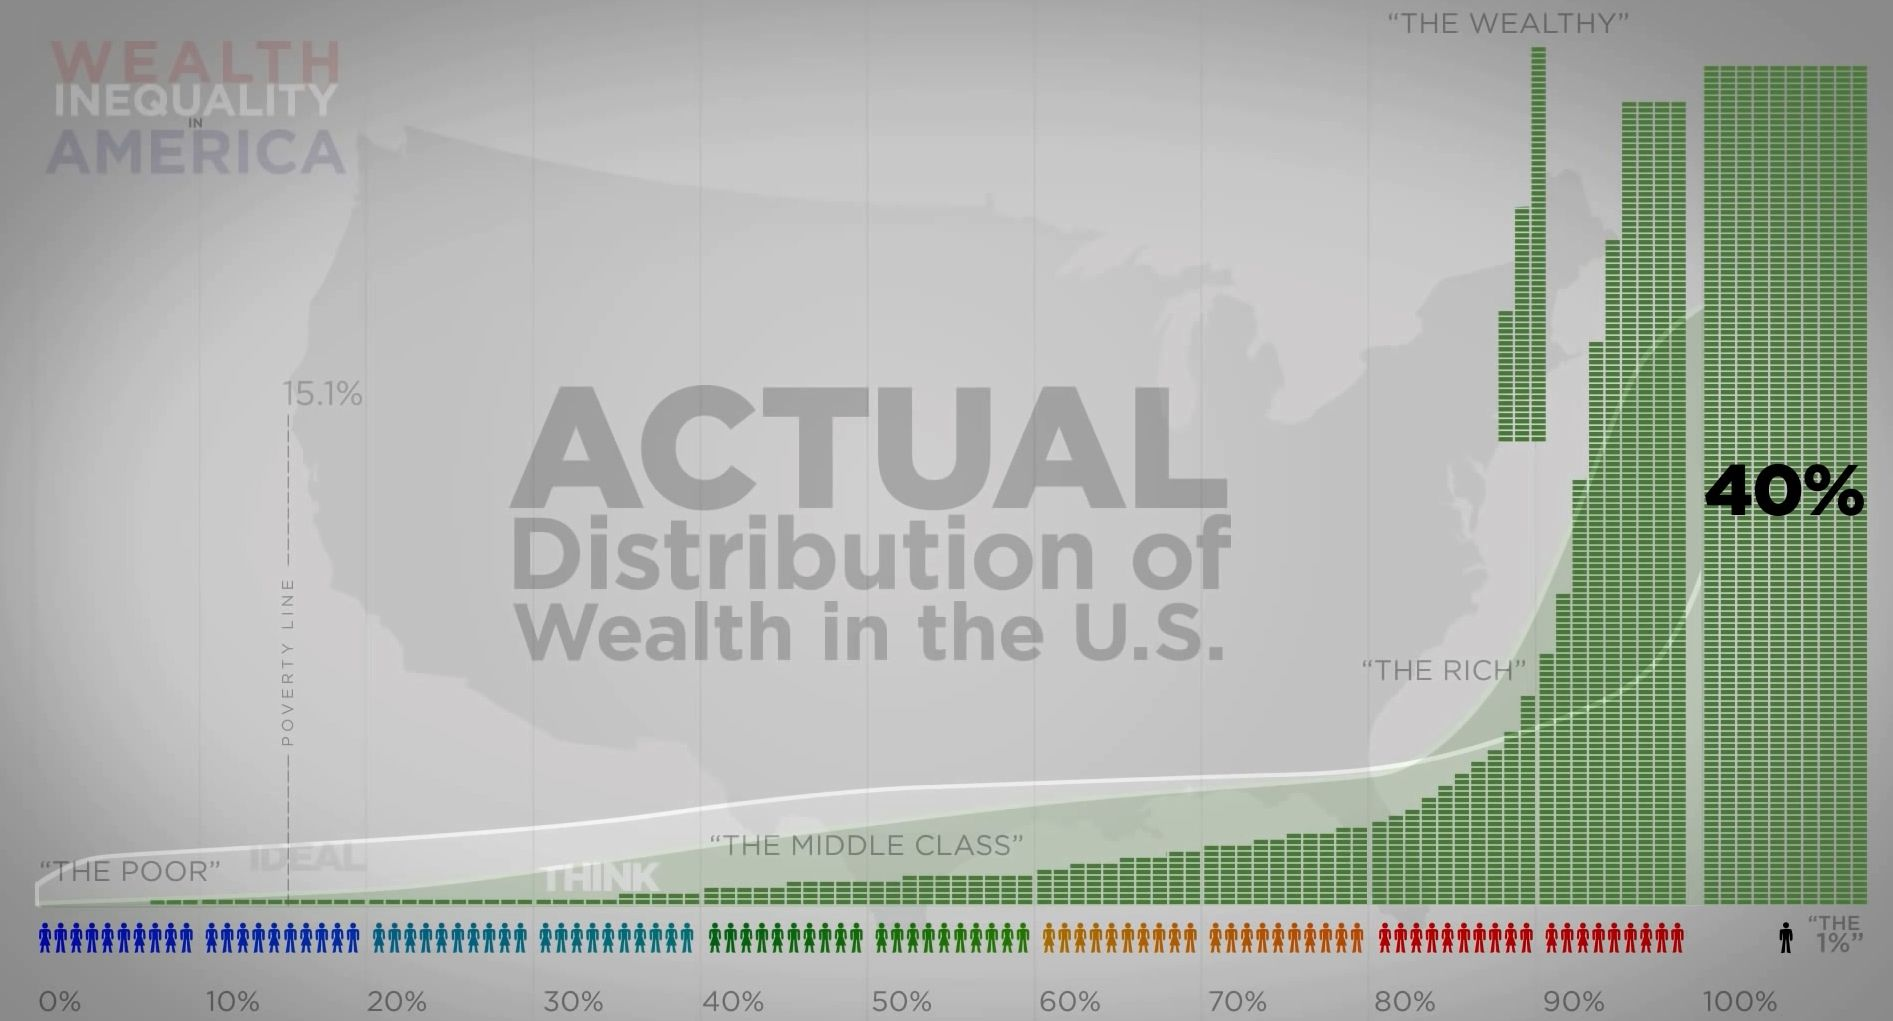 Distribution of Wealth in the U.S. Distribution of wealth